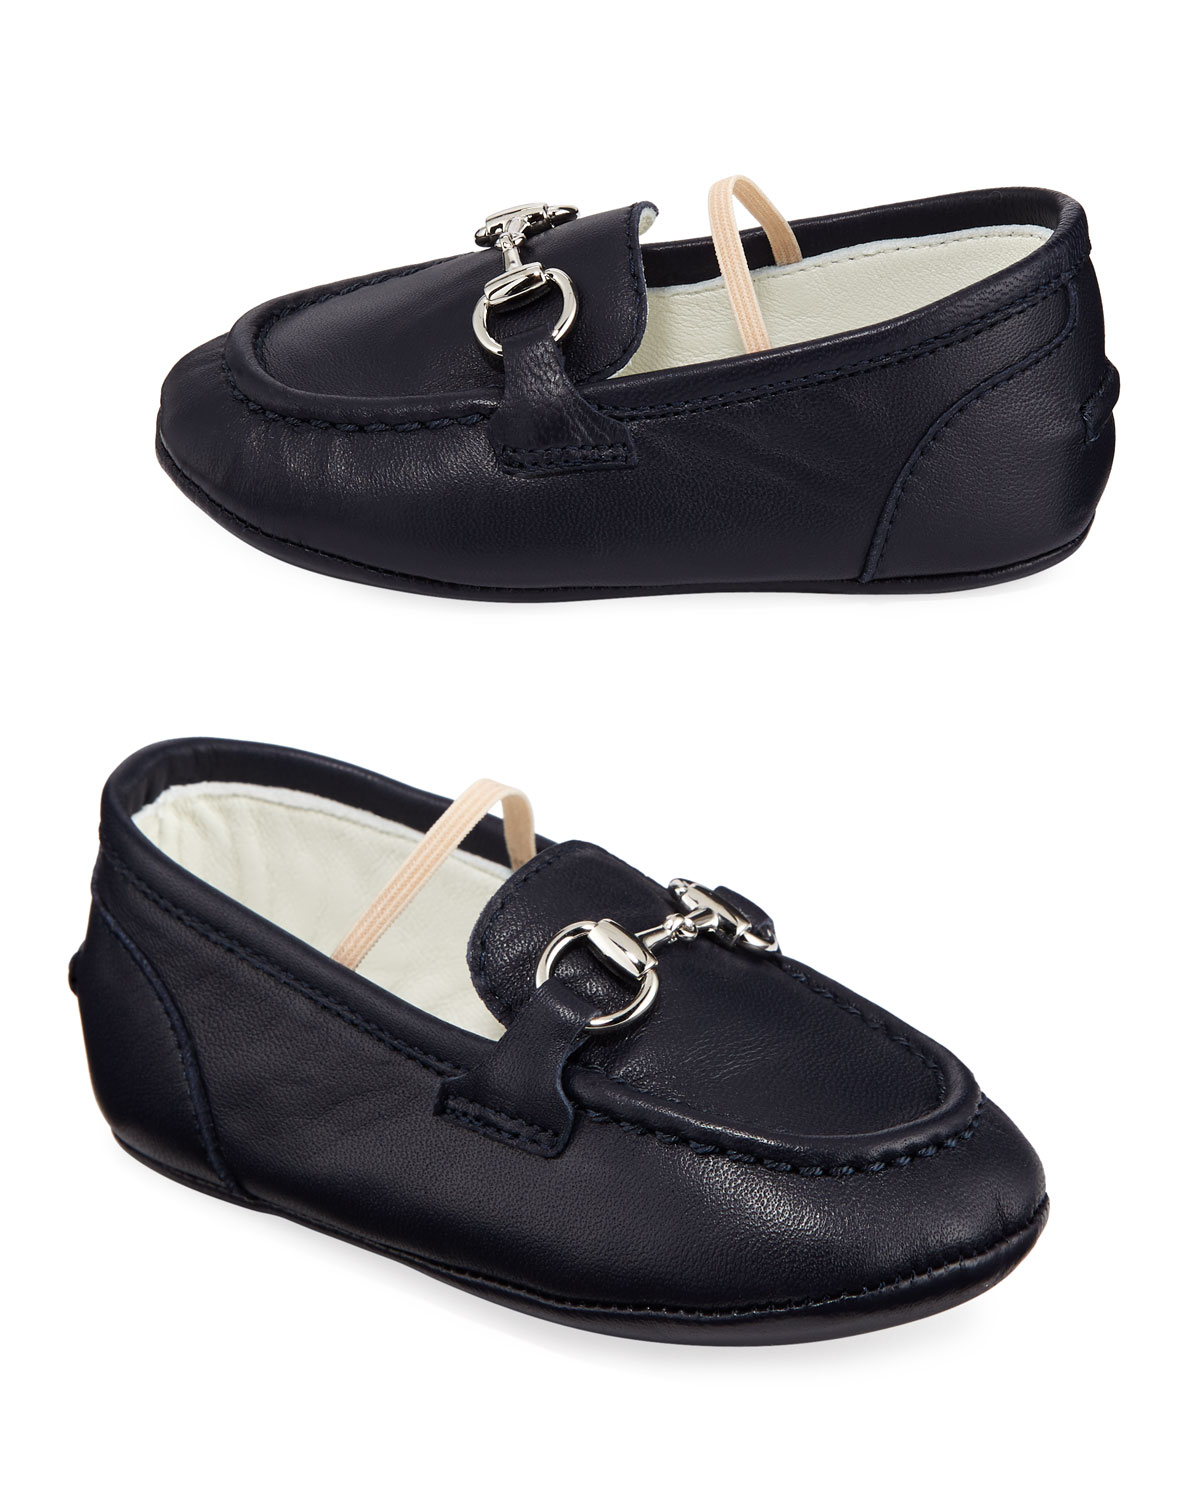 447dc8b98847 Gucci Jordaan Leather Loafers